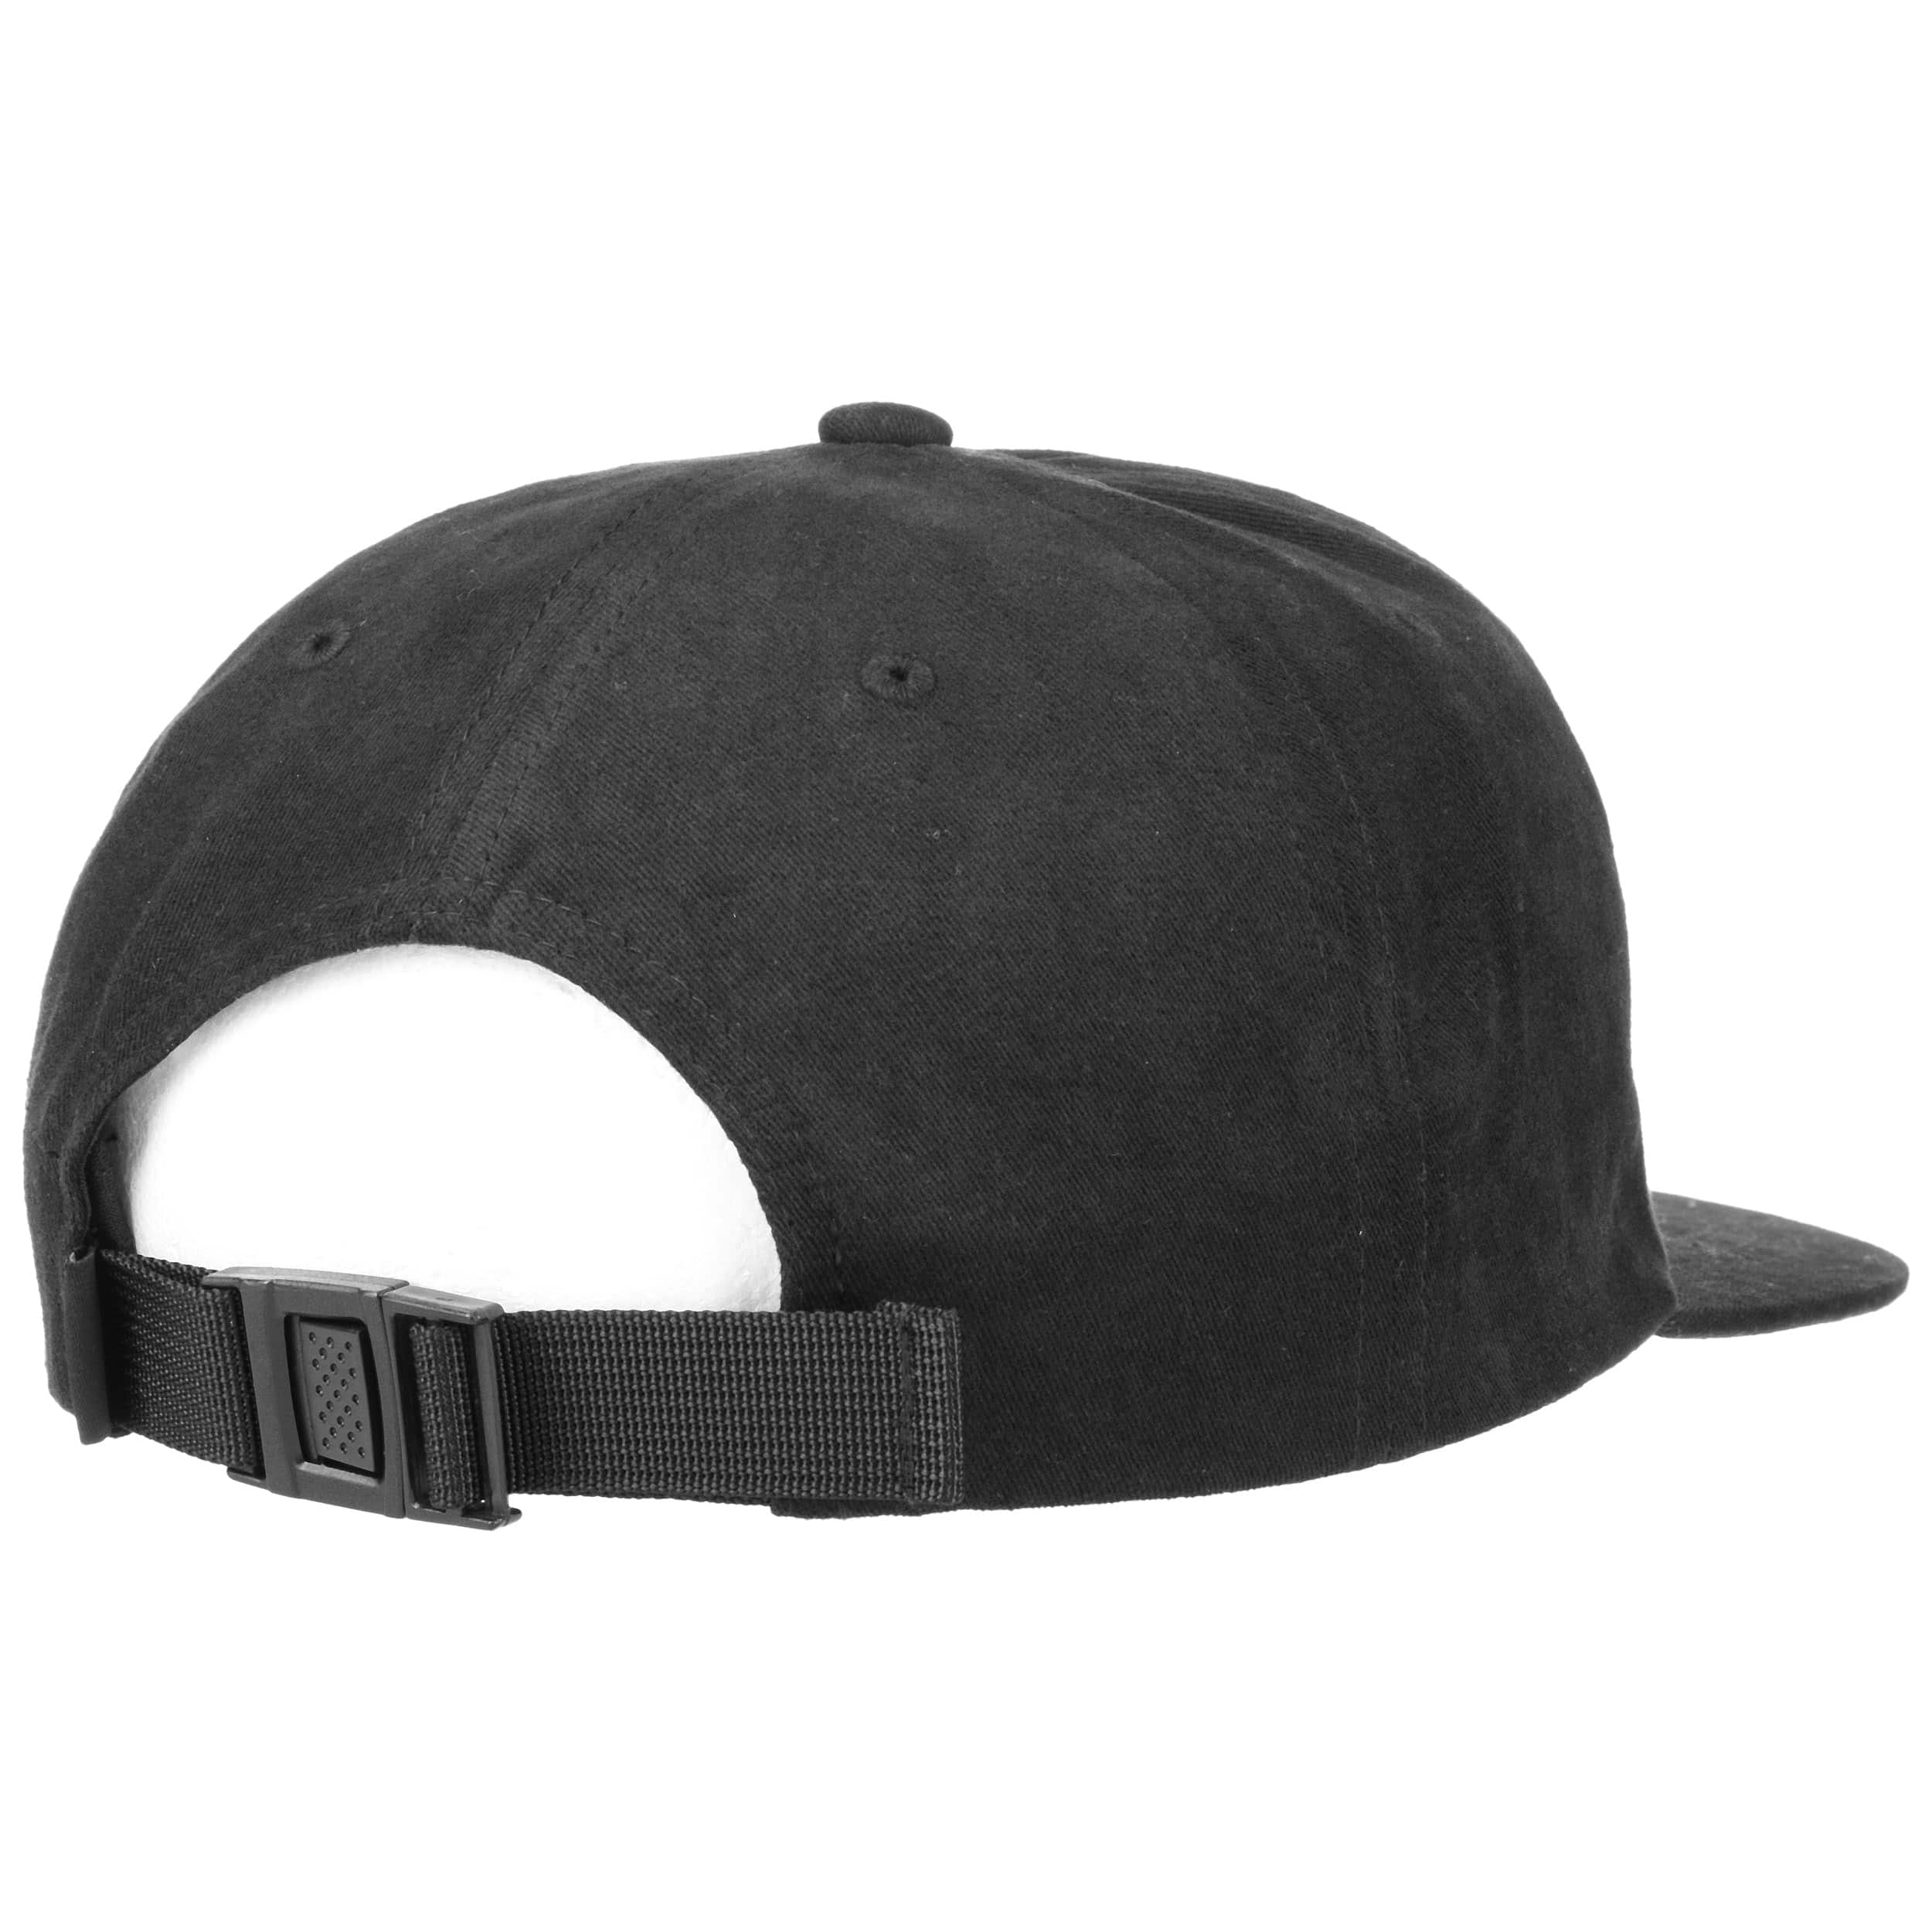 0e31c7ea70cad ... Flat 6 Panel Strapback Cap by Reell - olive 4 ...